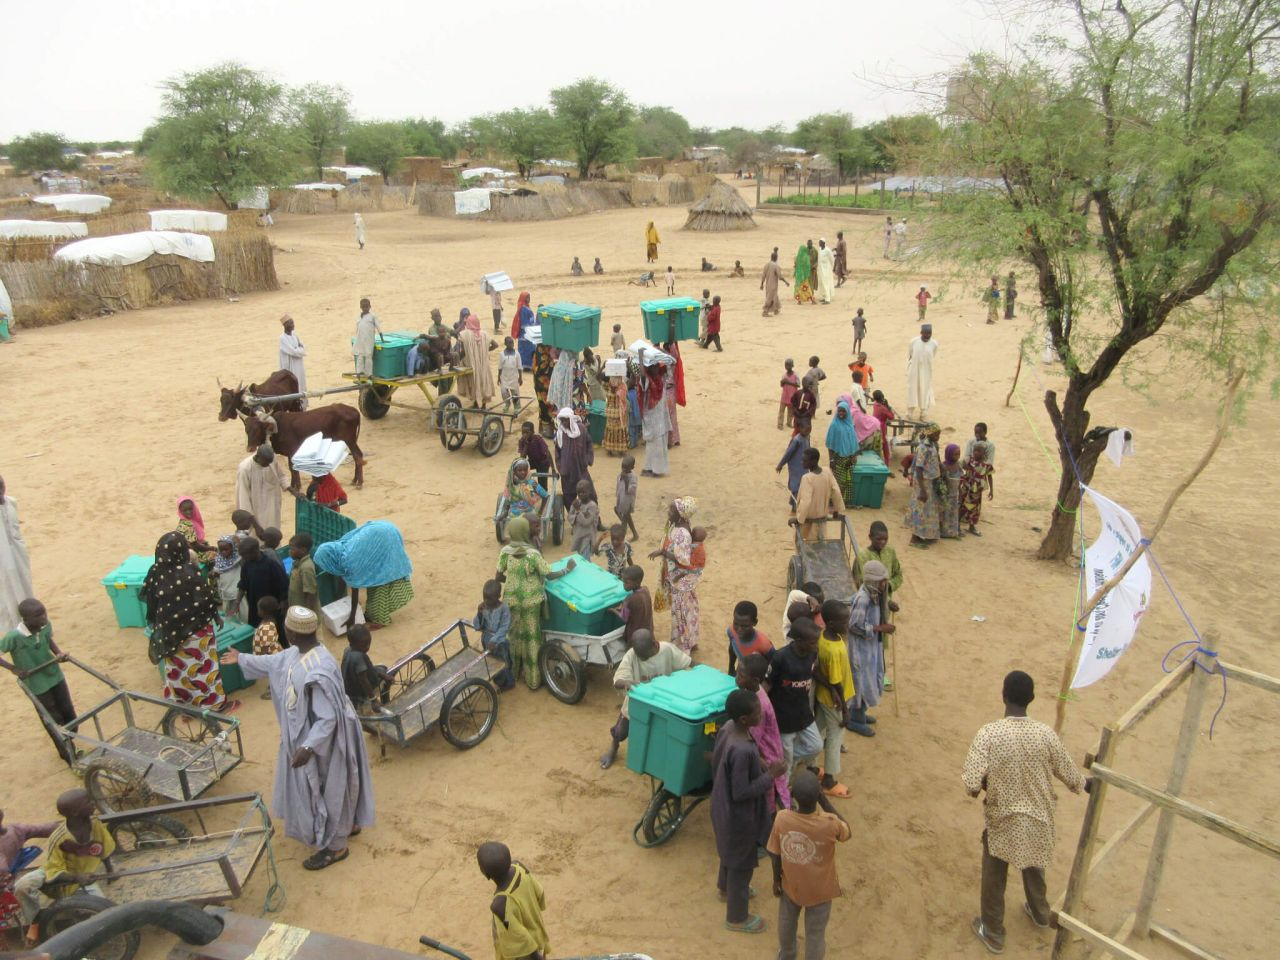 A group of people stand in the middle of a large clearing, using bikes and wagons to carry ShelterBoxes